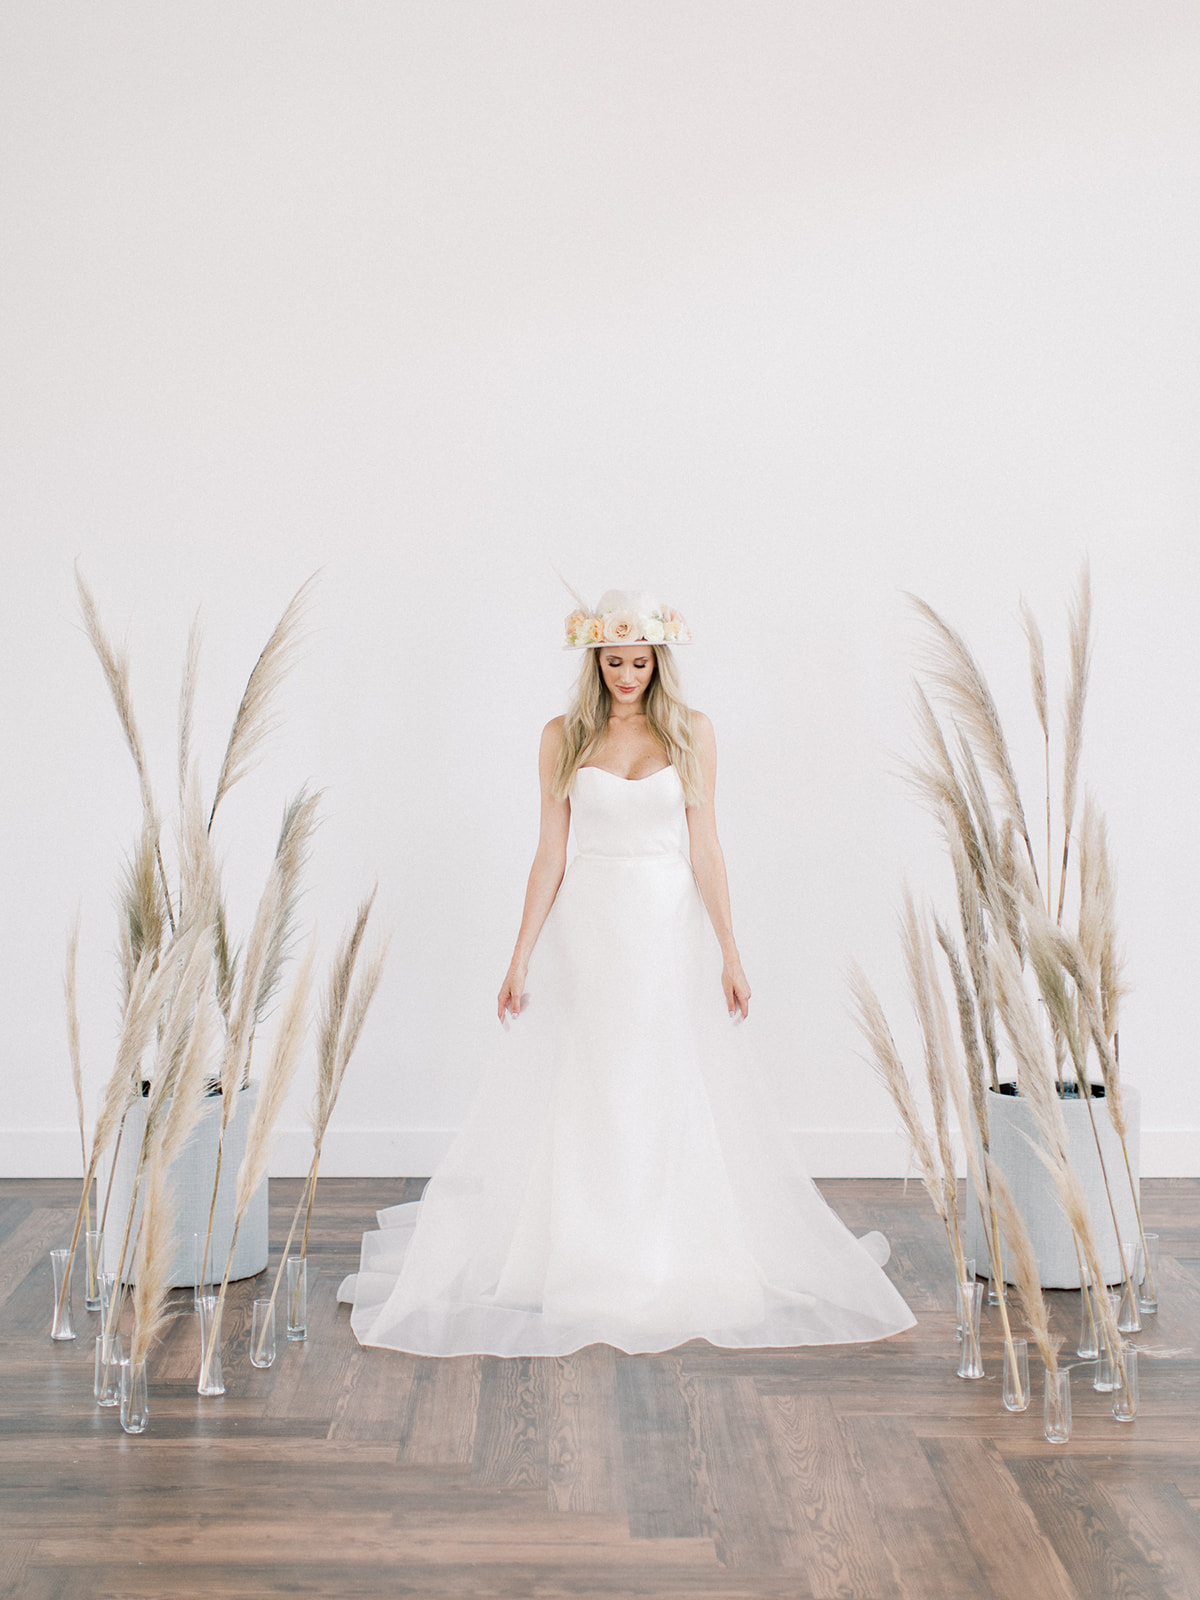 A-line wedding dress: Clean & Modern Styled Shoot at 14TENN featured on Nashville Bride Guide